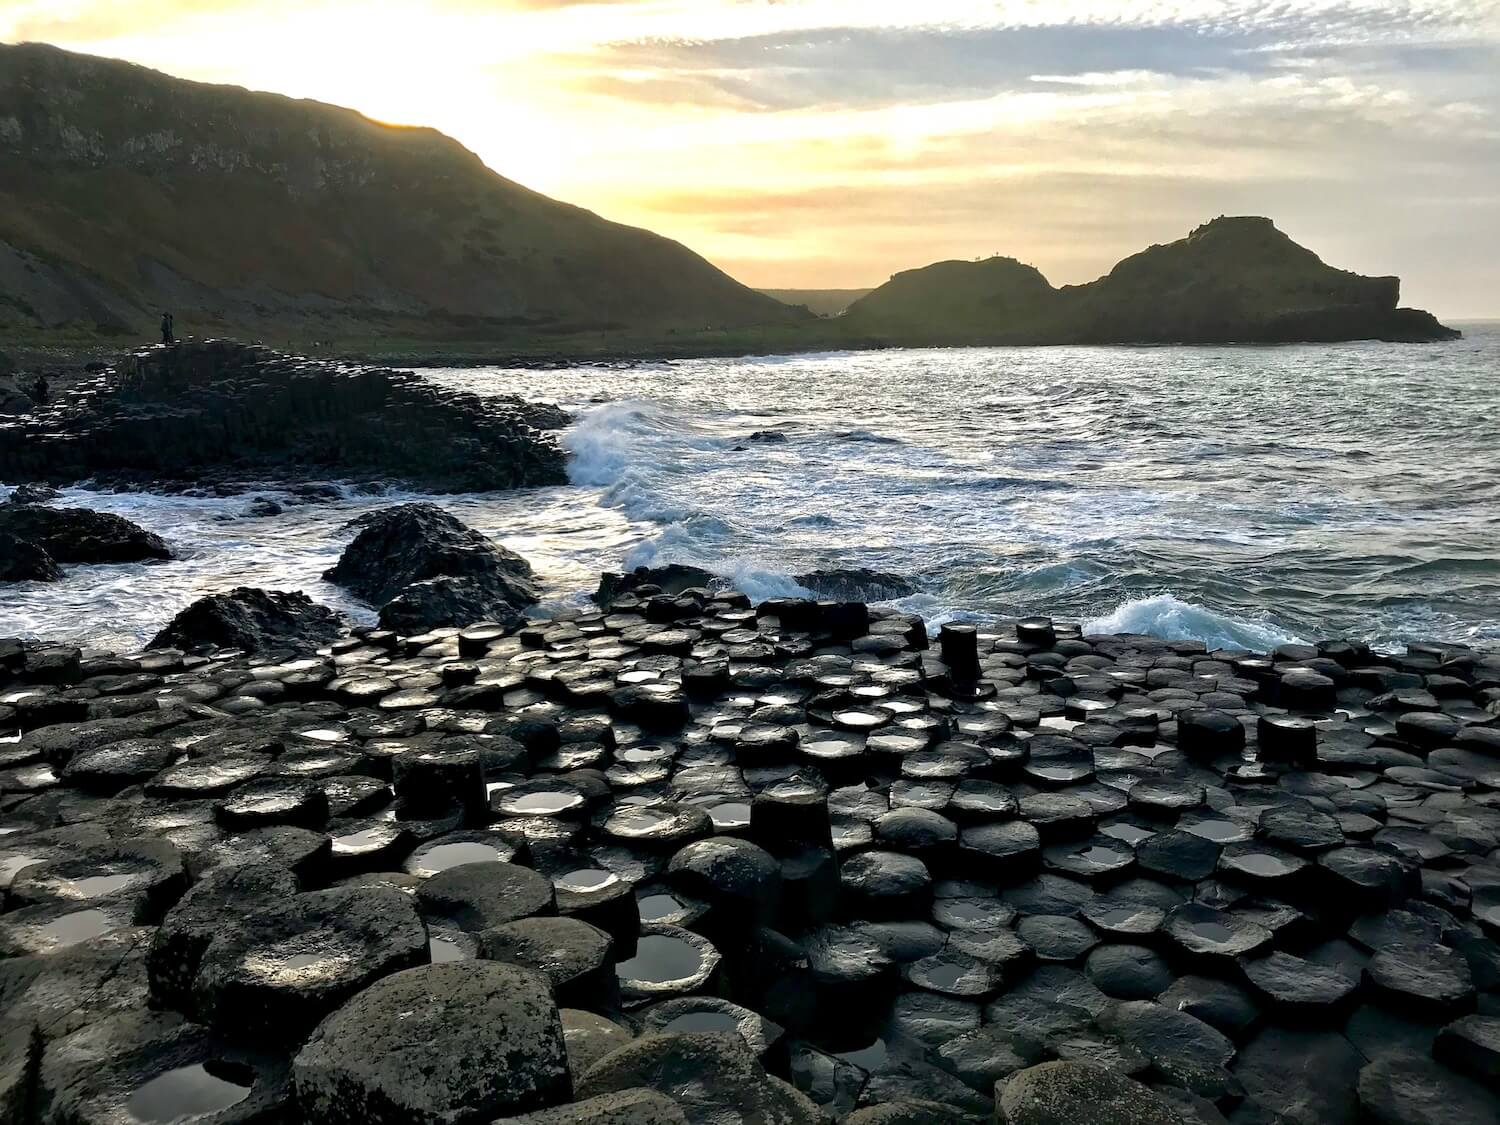 The Giant's Causeway is an area of about 40,000 interlocking basalt columns which are shown in the foreground of this photo. Dramatic high cliffs leading to the sea are in the background with blue sky.